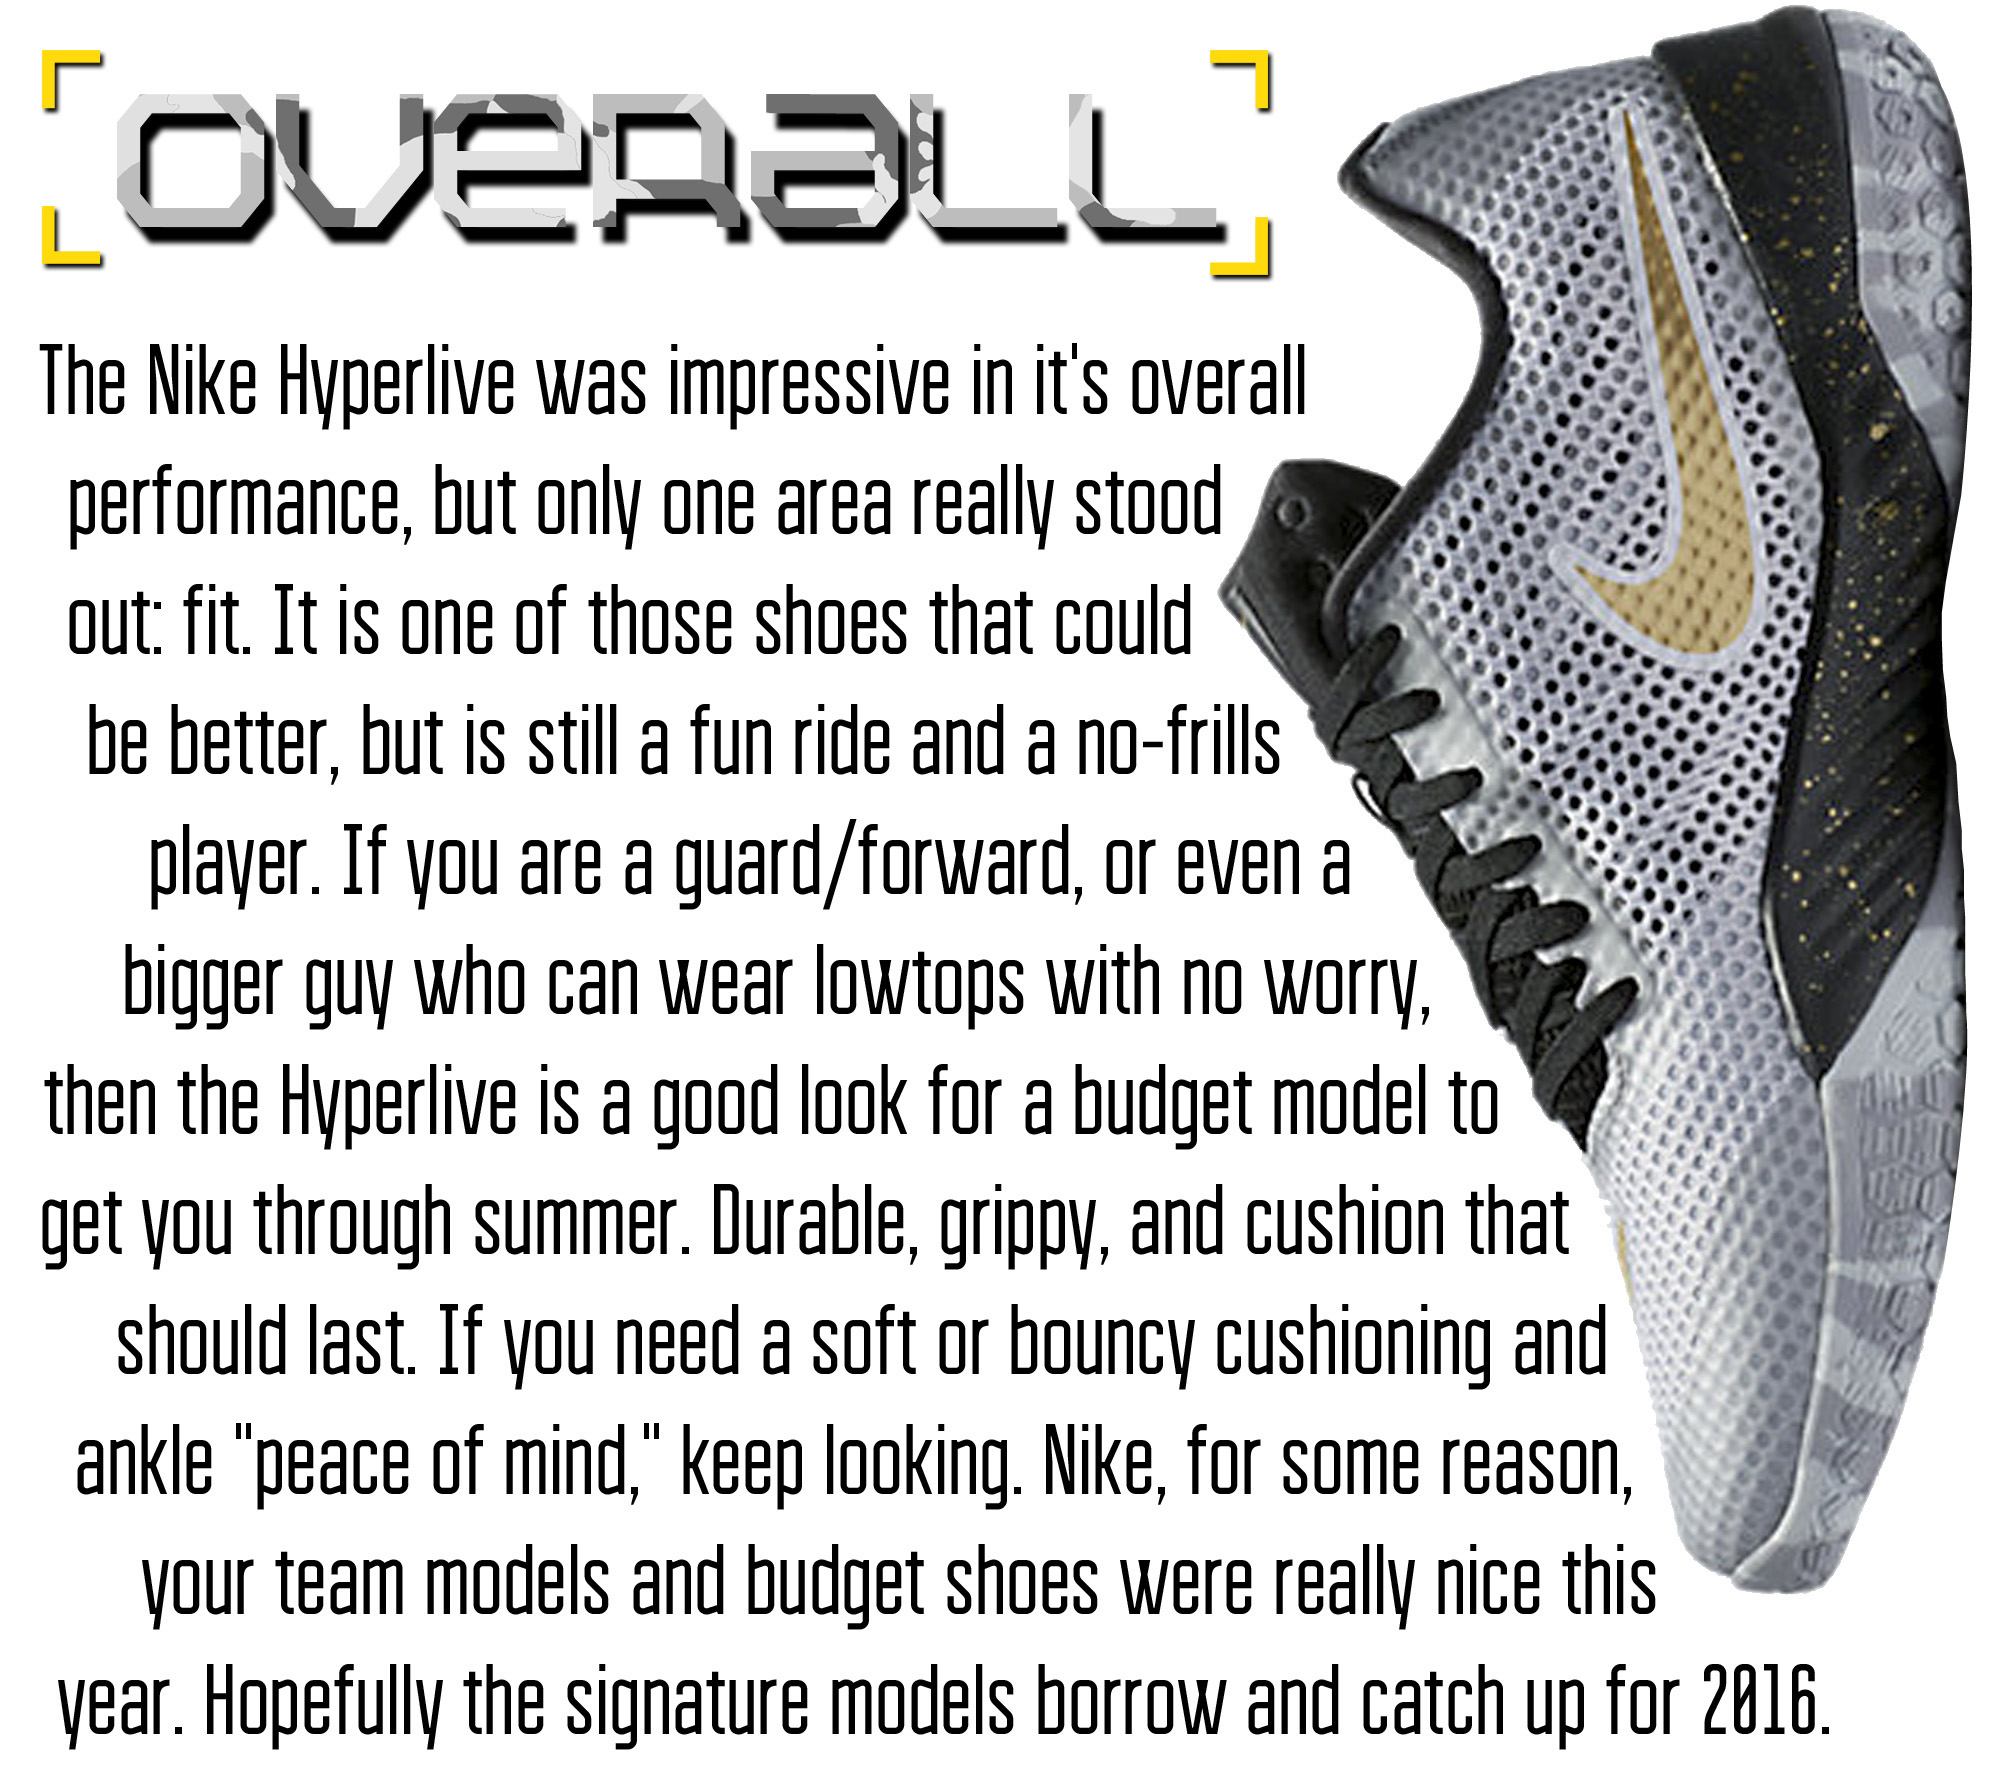 Nike Hyperlive Performance Test